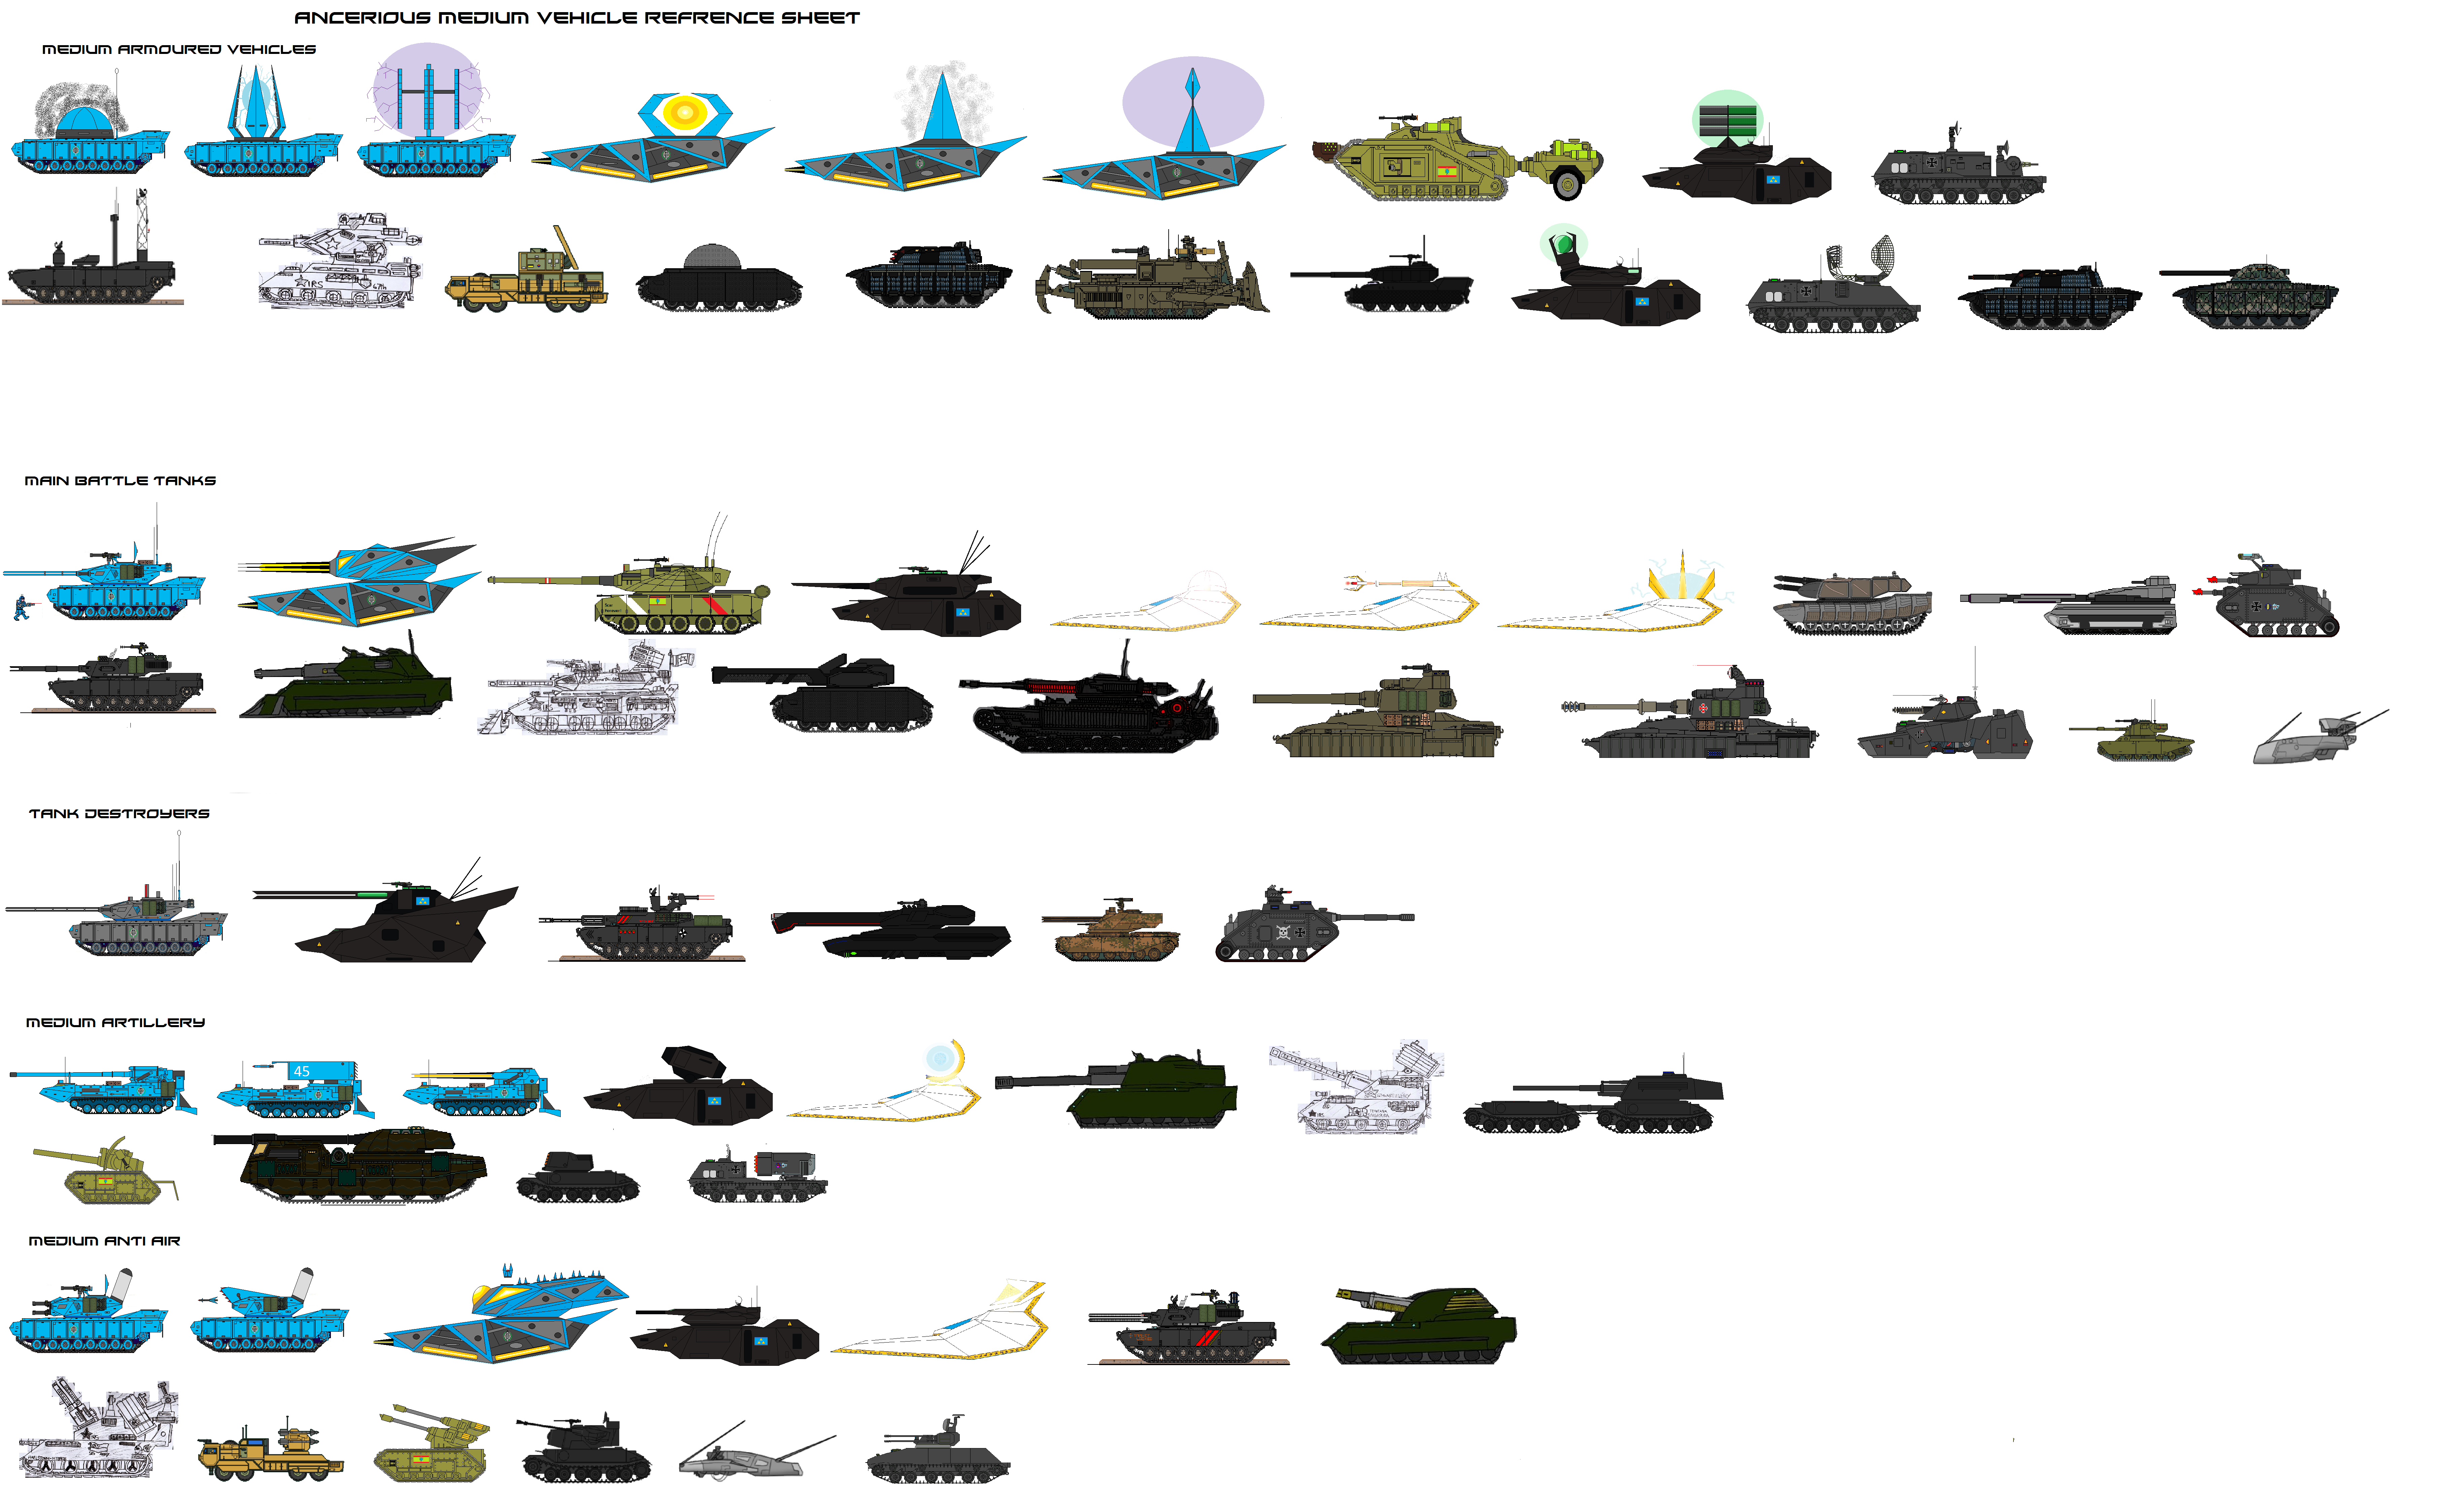 Ancerious Medium vehicles sheet by EmperorMyric